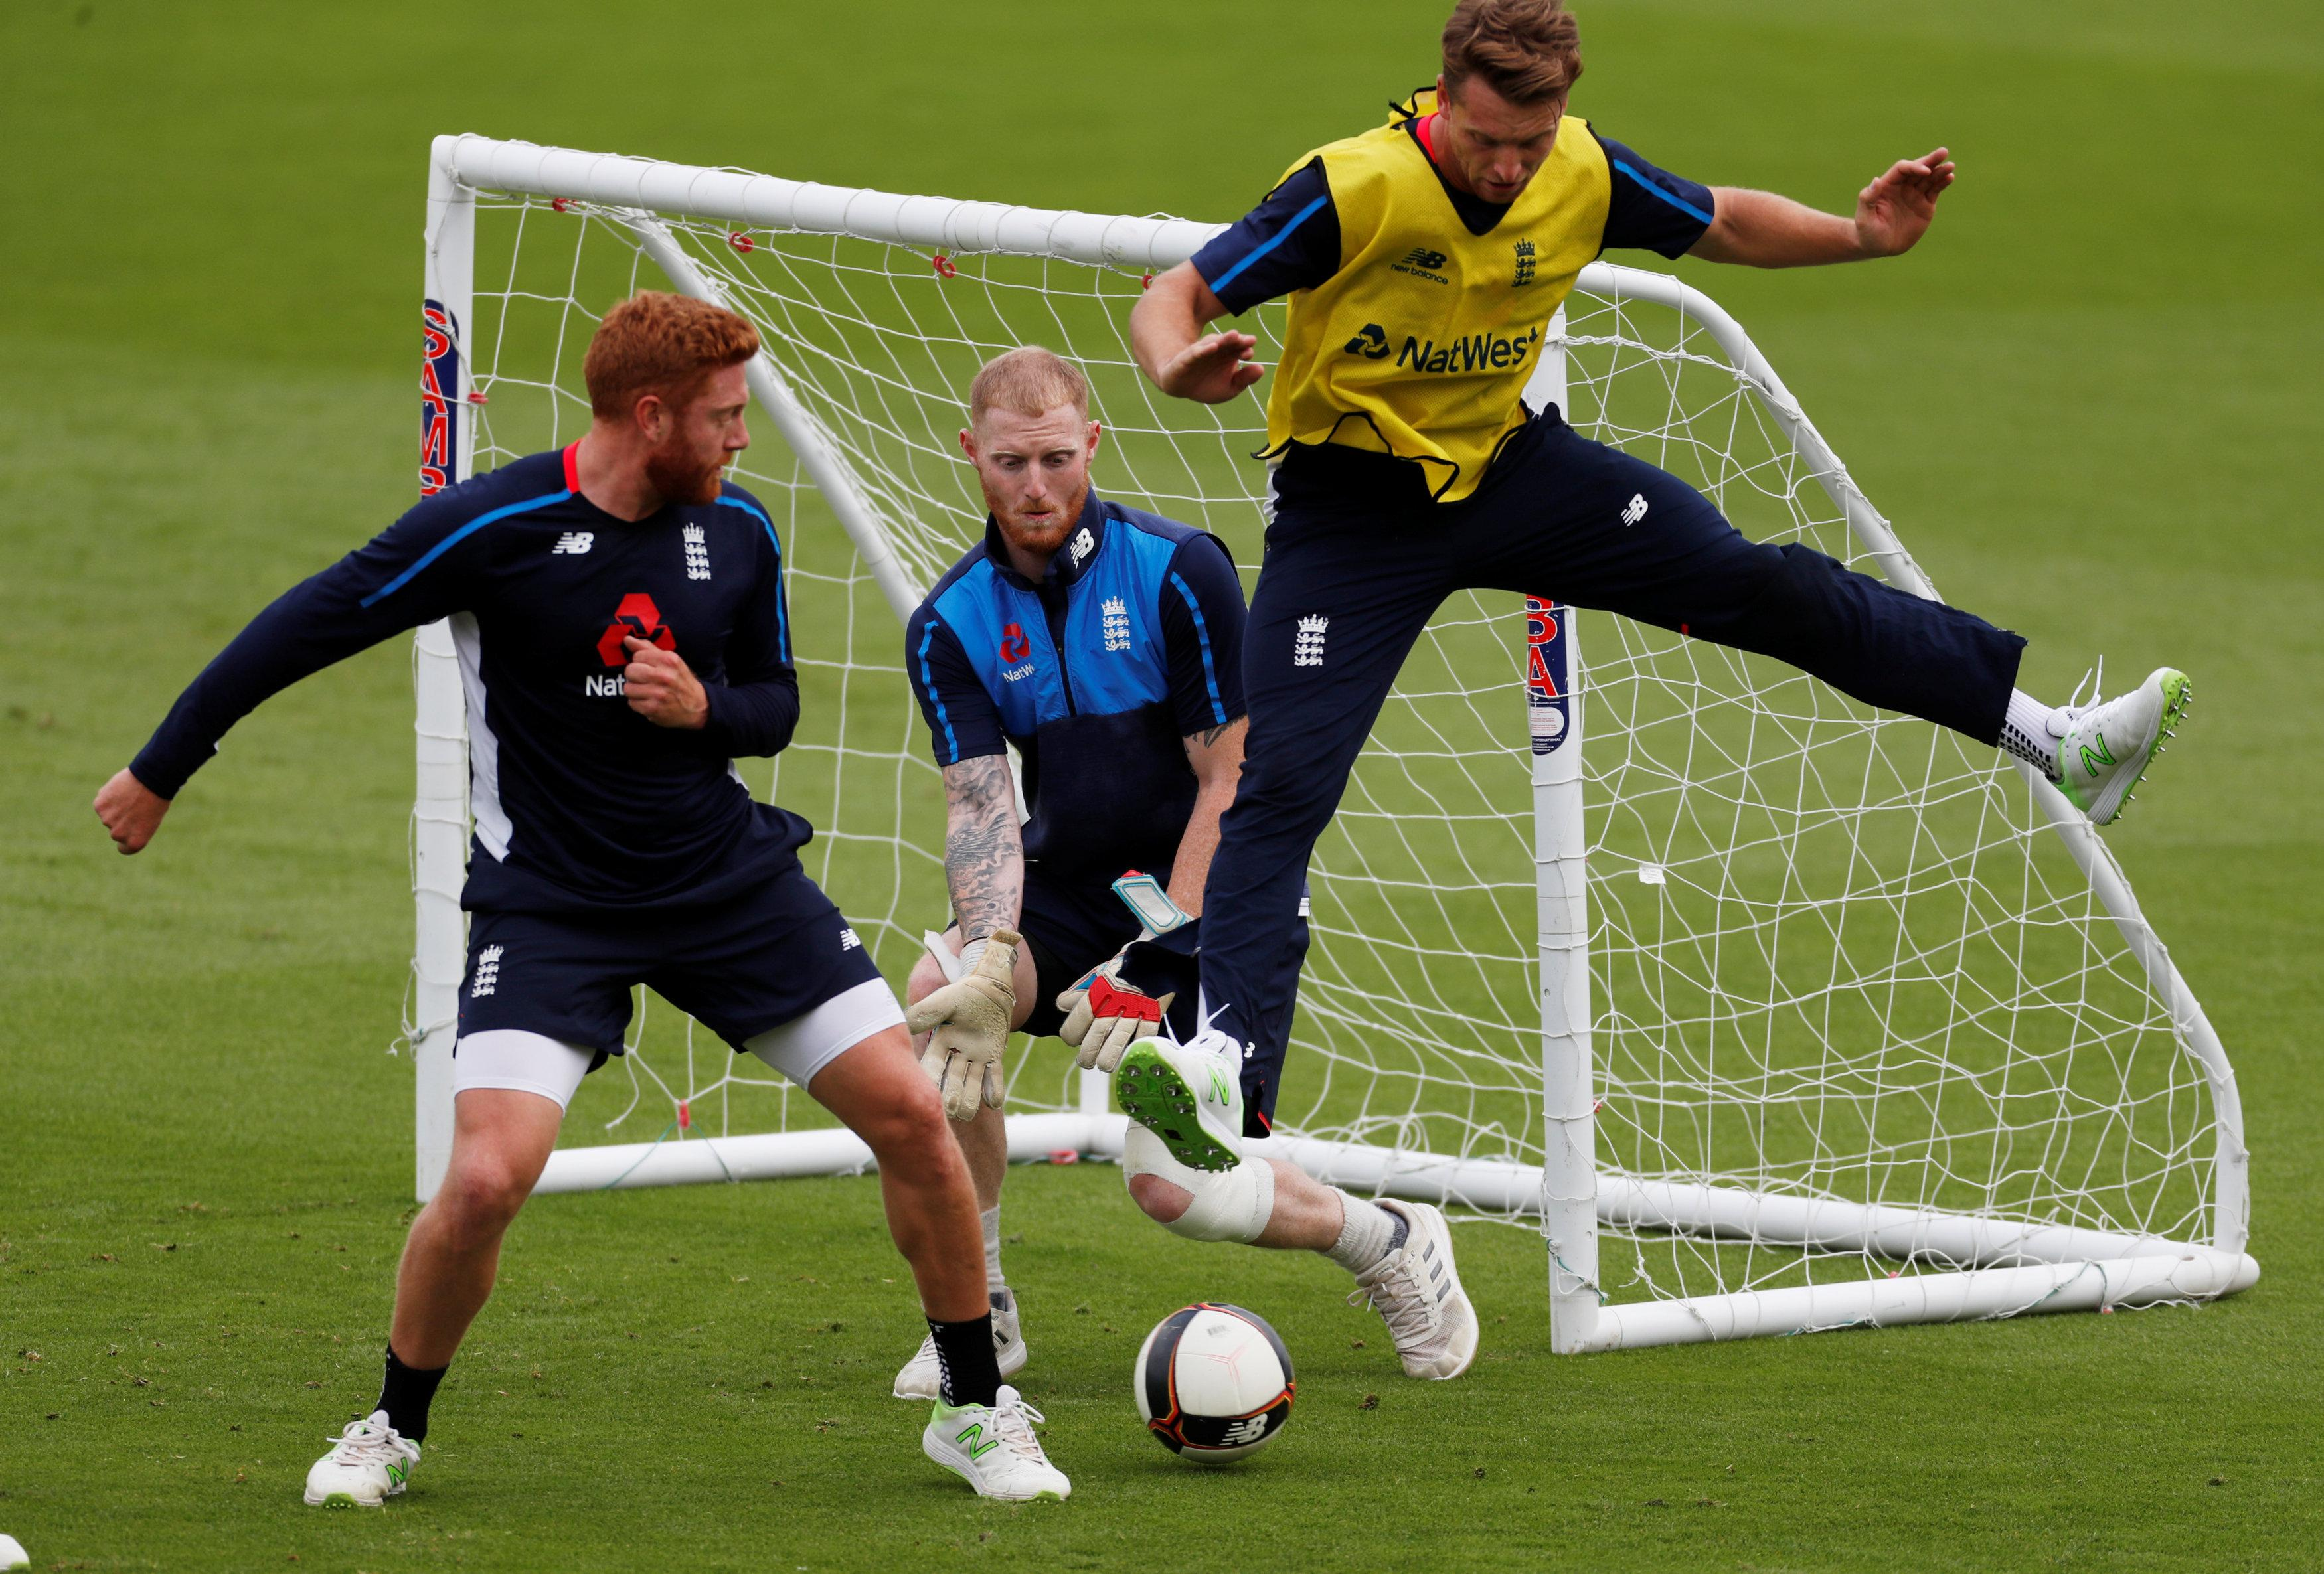 Stokes, Buttler and Bairstow warm up for their practice session with a kickabout